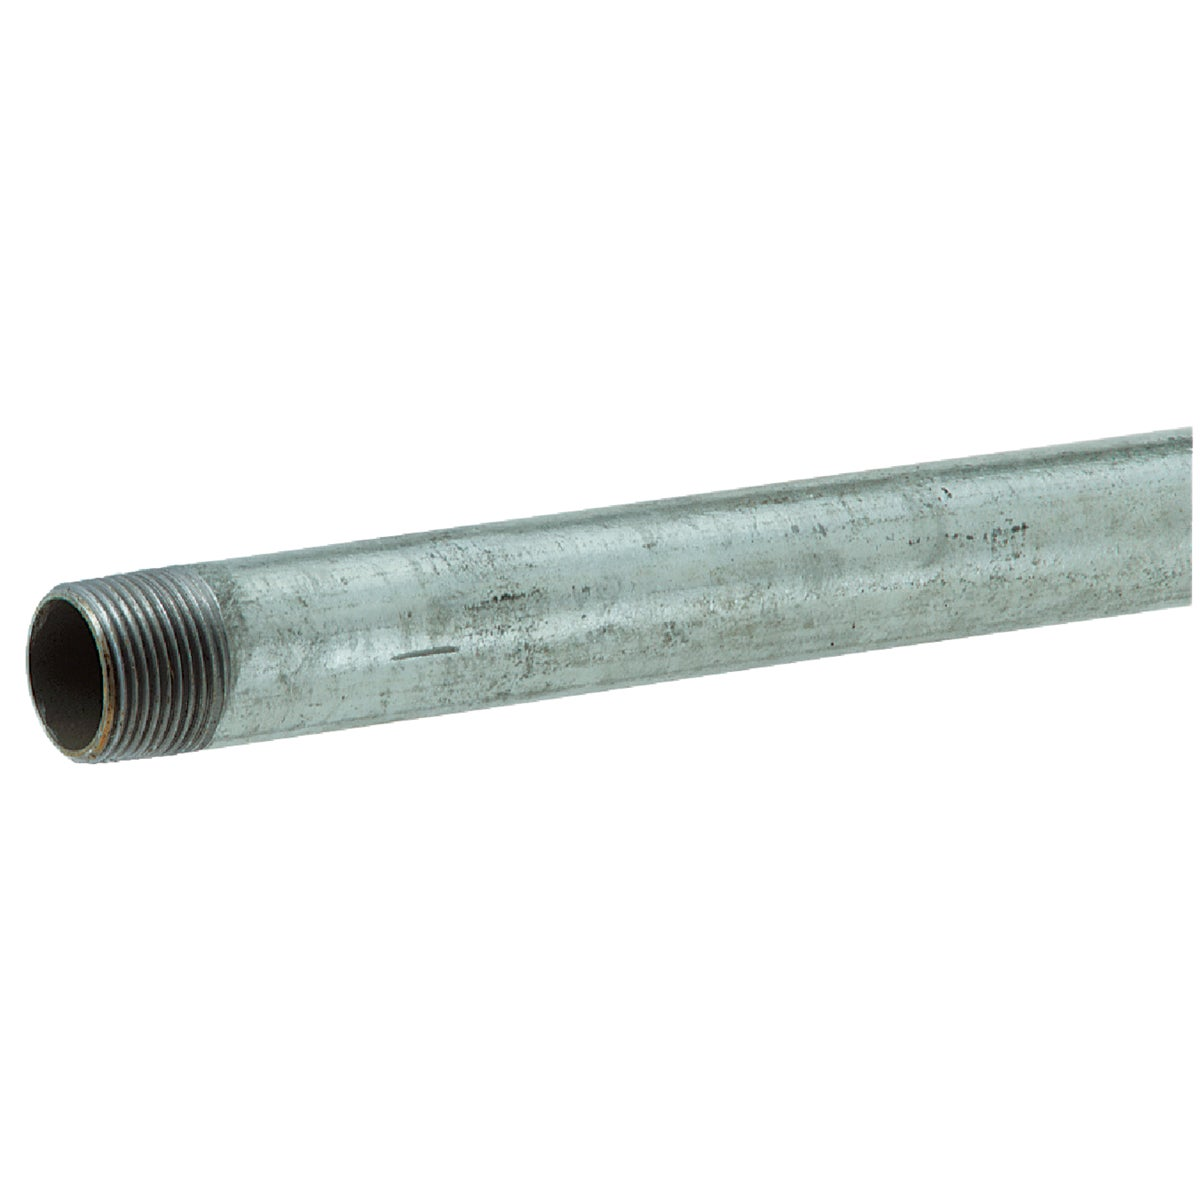 1X36 GALV RDI-CT PIPE - 1X36 by Southland Pipe Nippl